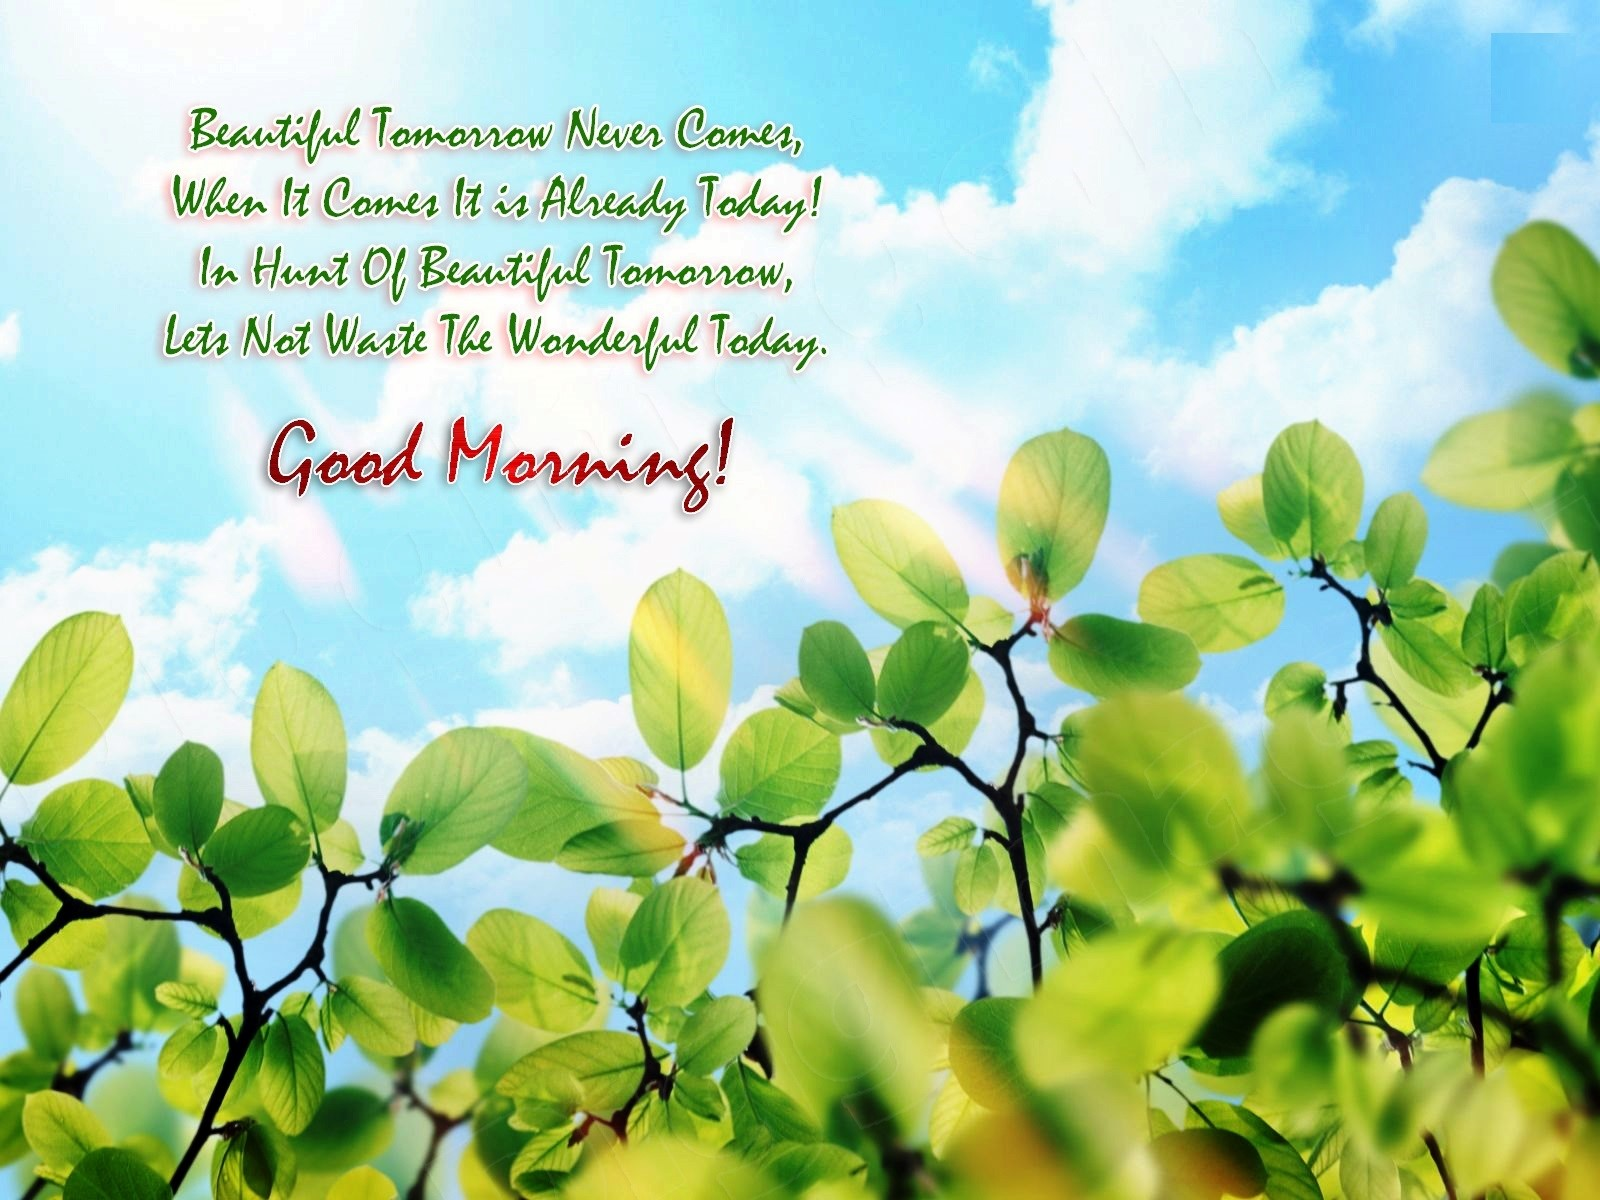 Good Morning Quotes For Him Quotesgram: Good Morning Hand Some Quotes. QuotesGram